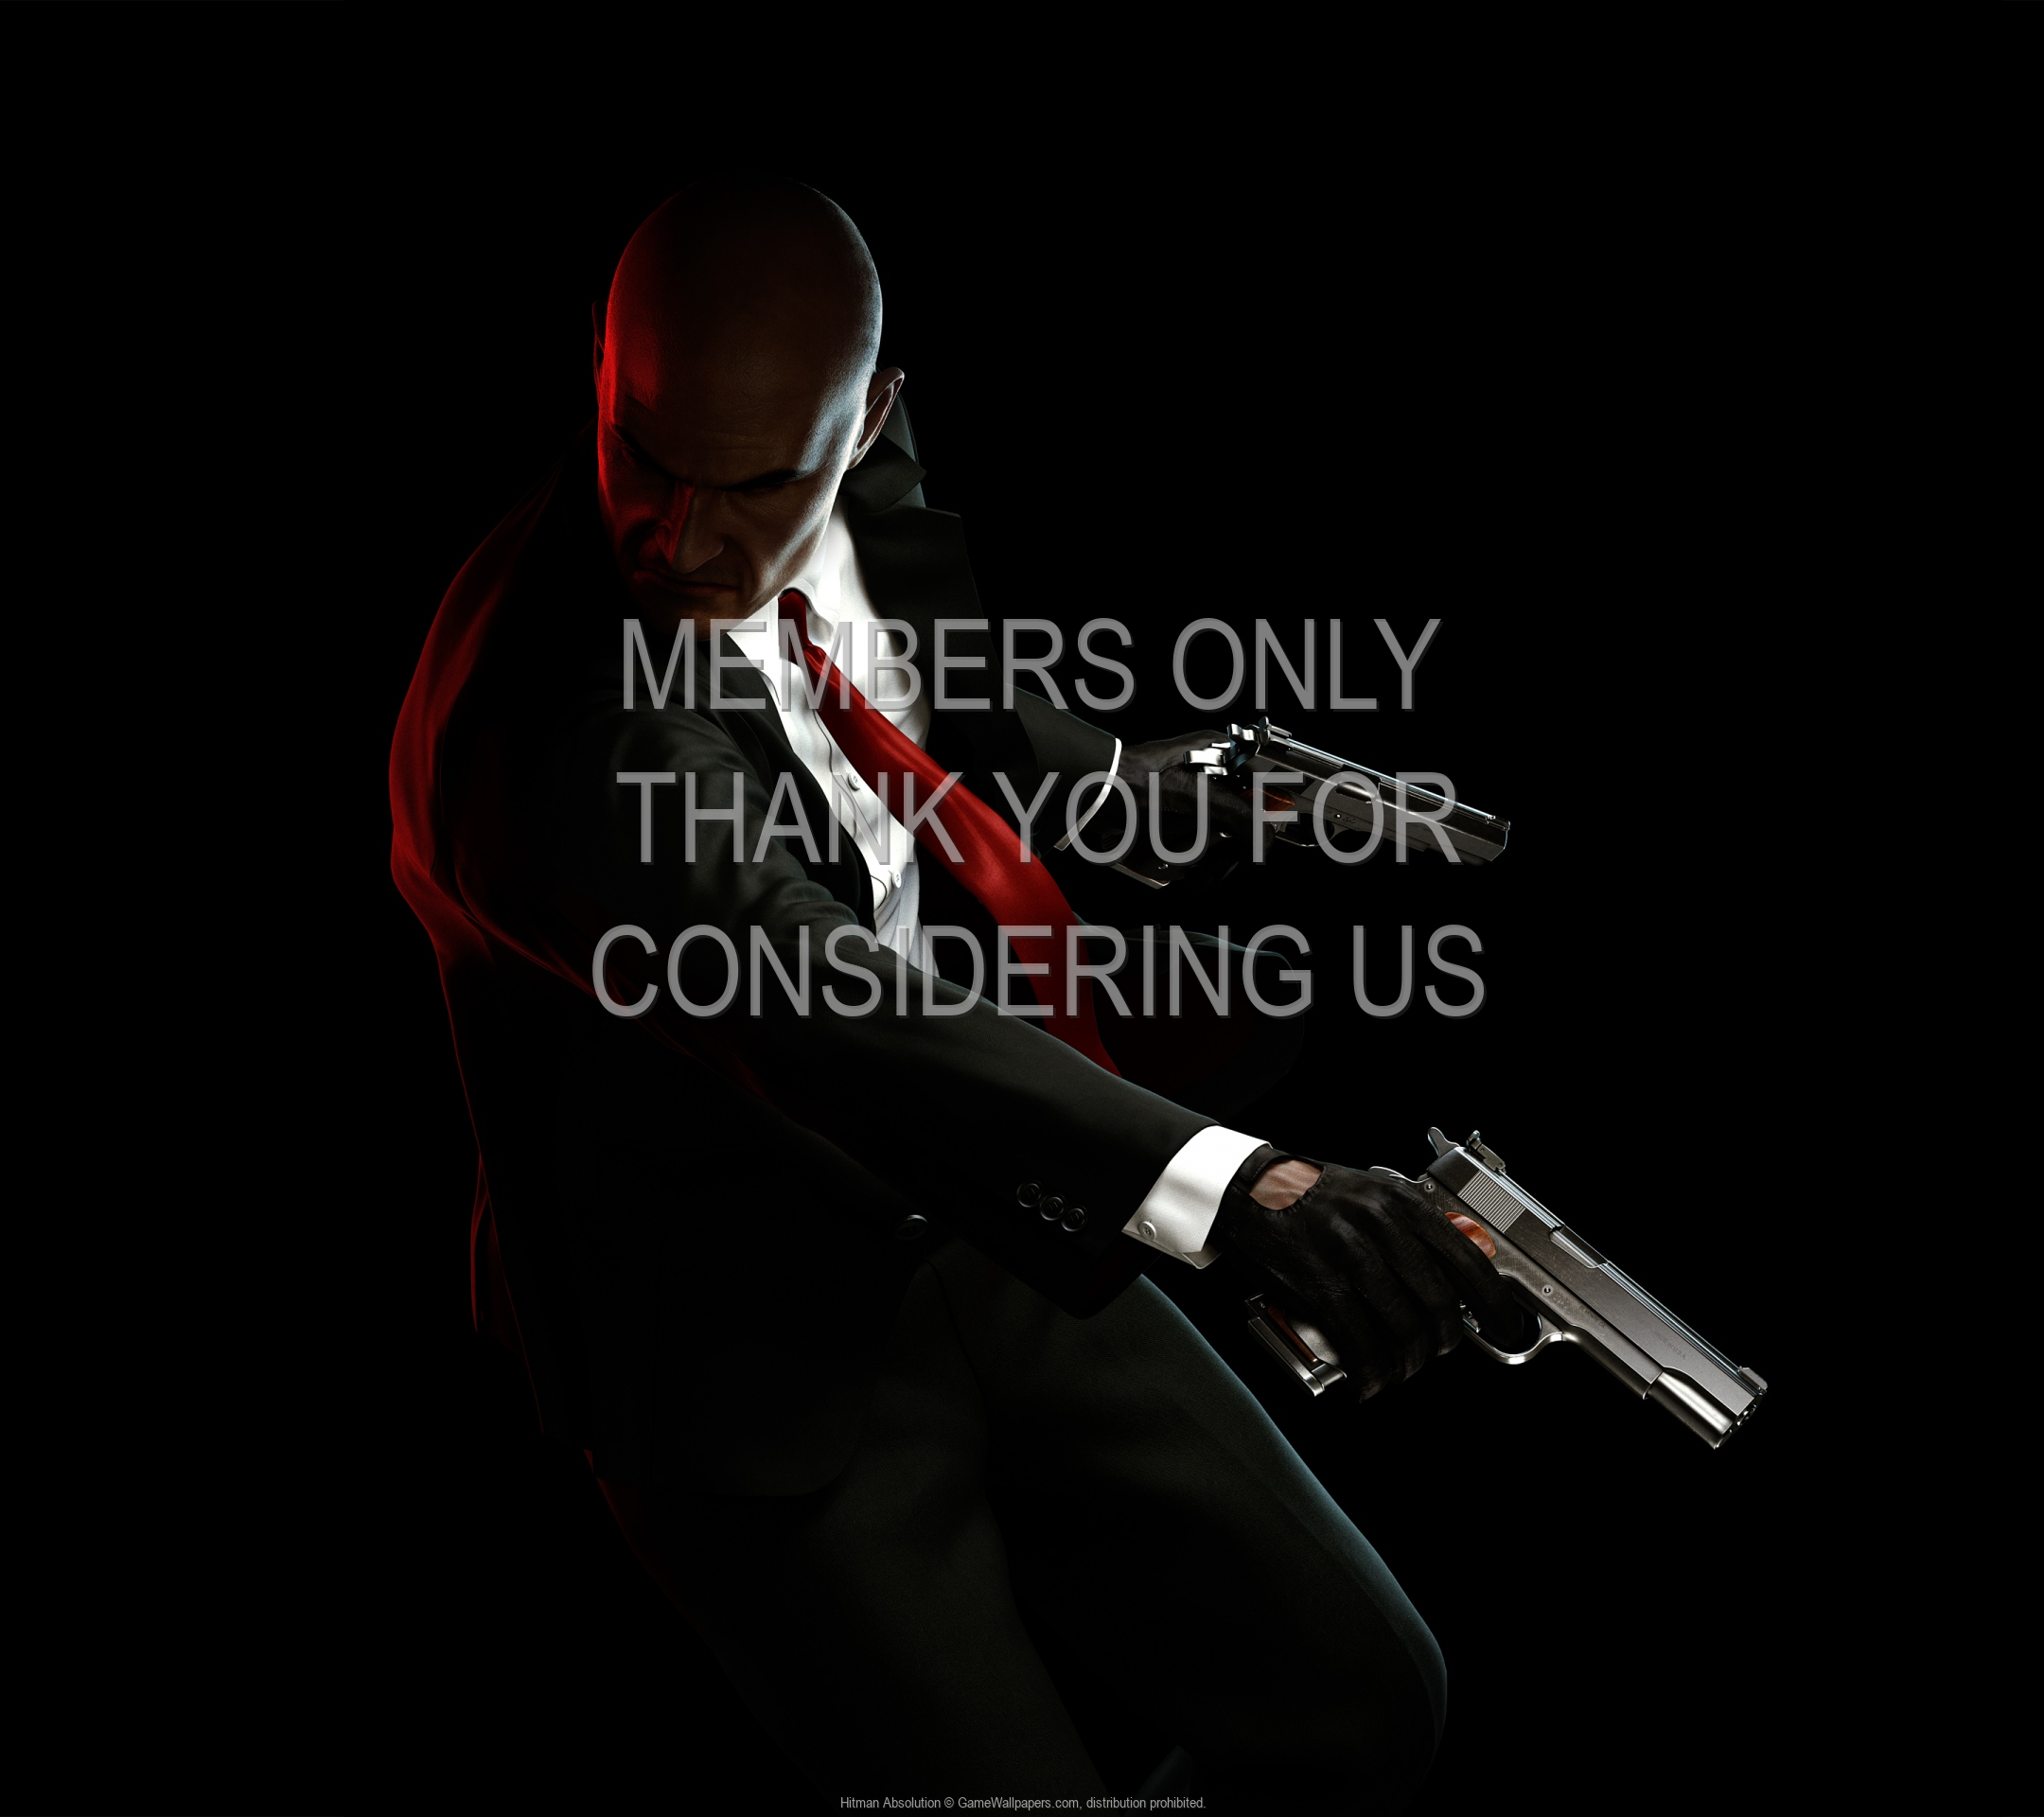 Hitman: Absolution 1920x1080 Mobile wallpaper or background 16